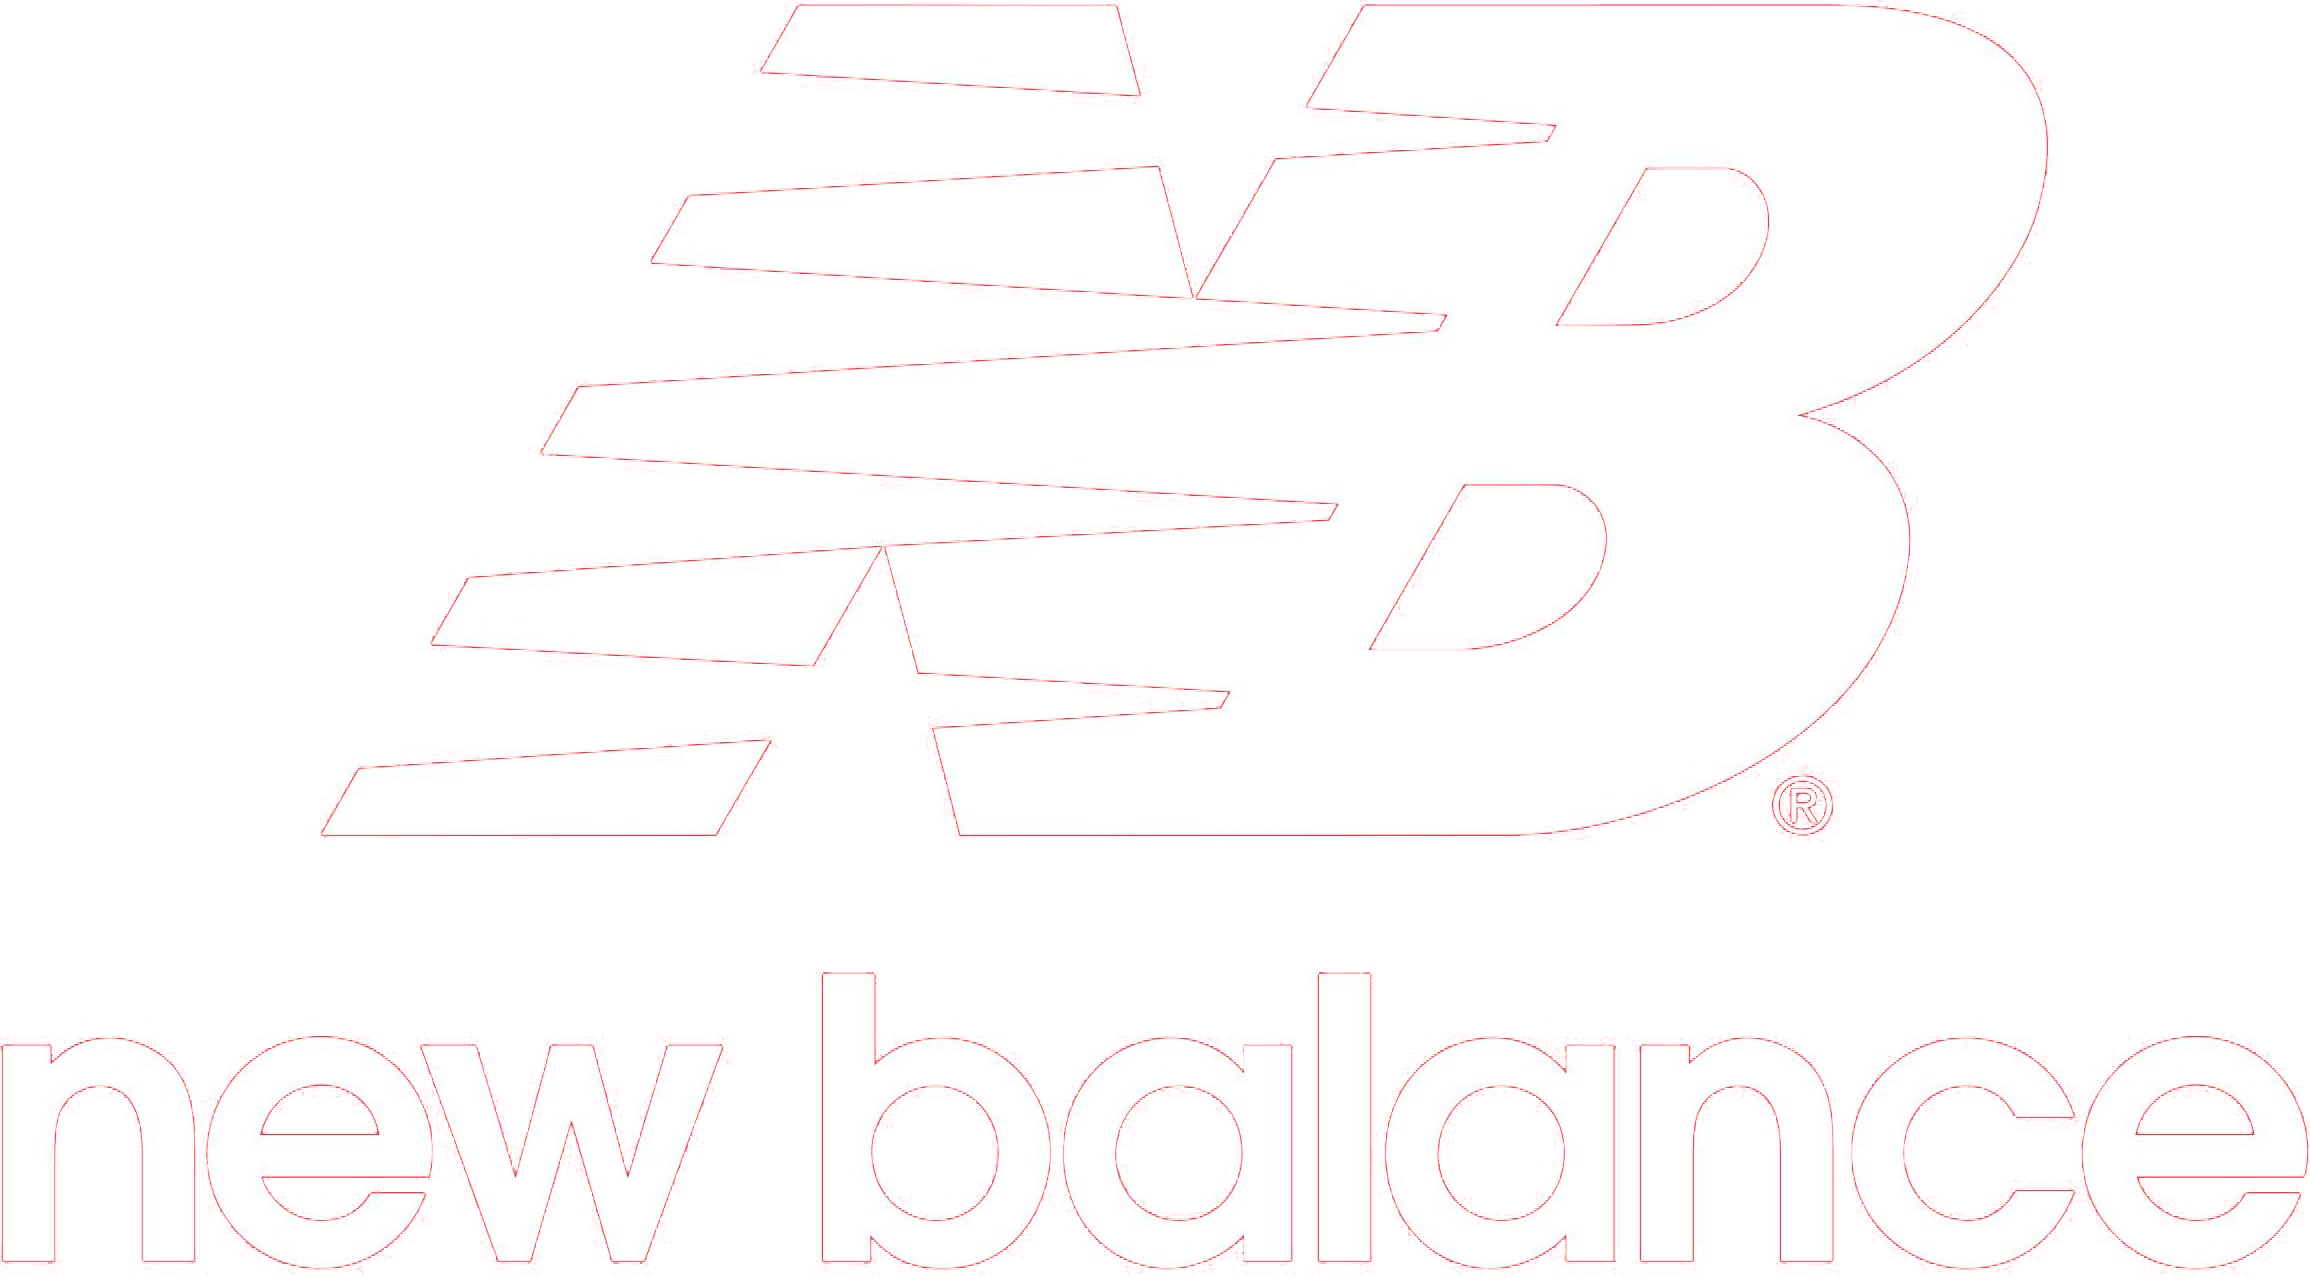 new balance logo png images